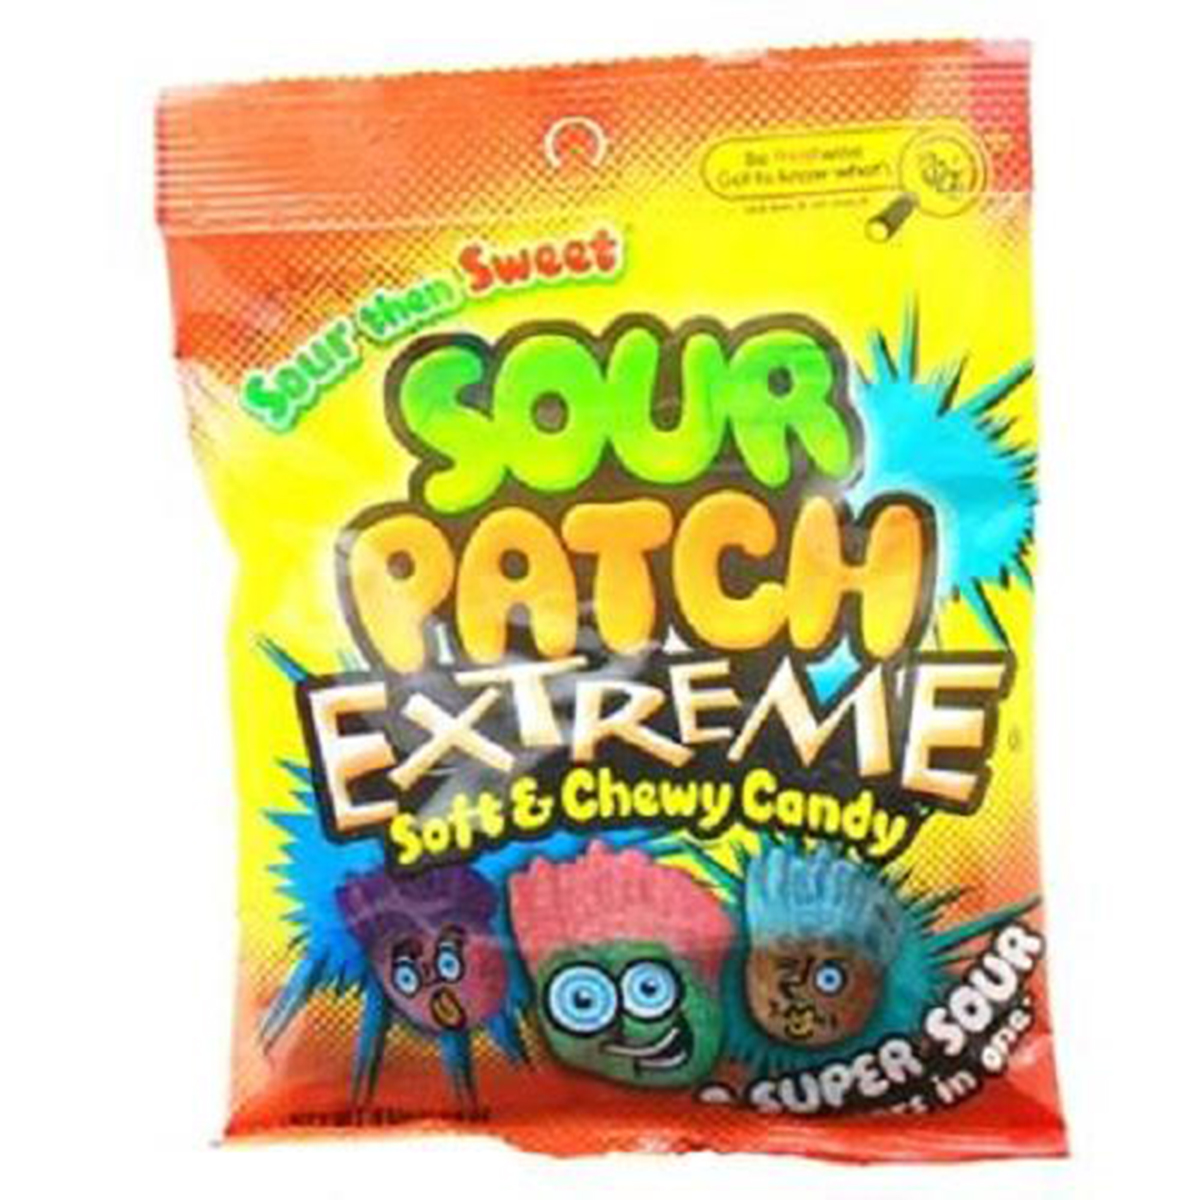 Product Of Sour Patch, Extreme Soft & Chewy, Count 12 (4 oz) - Sugar Candy / Grab Varieties & Flavors